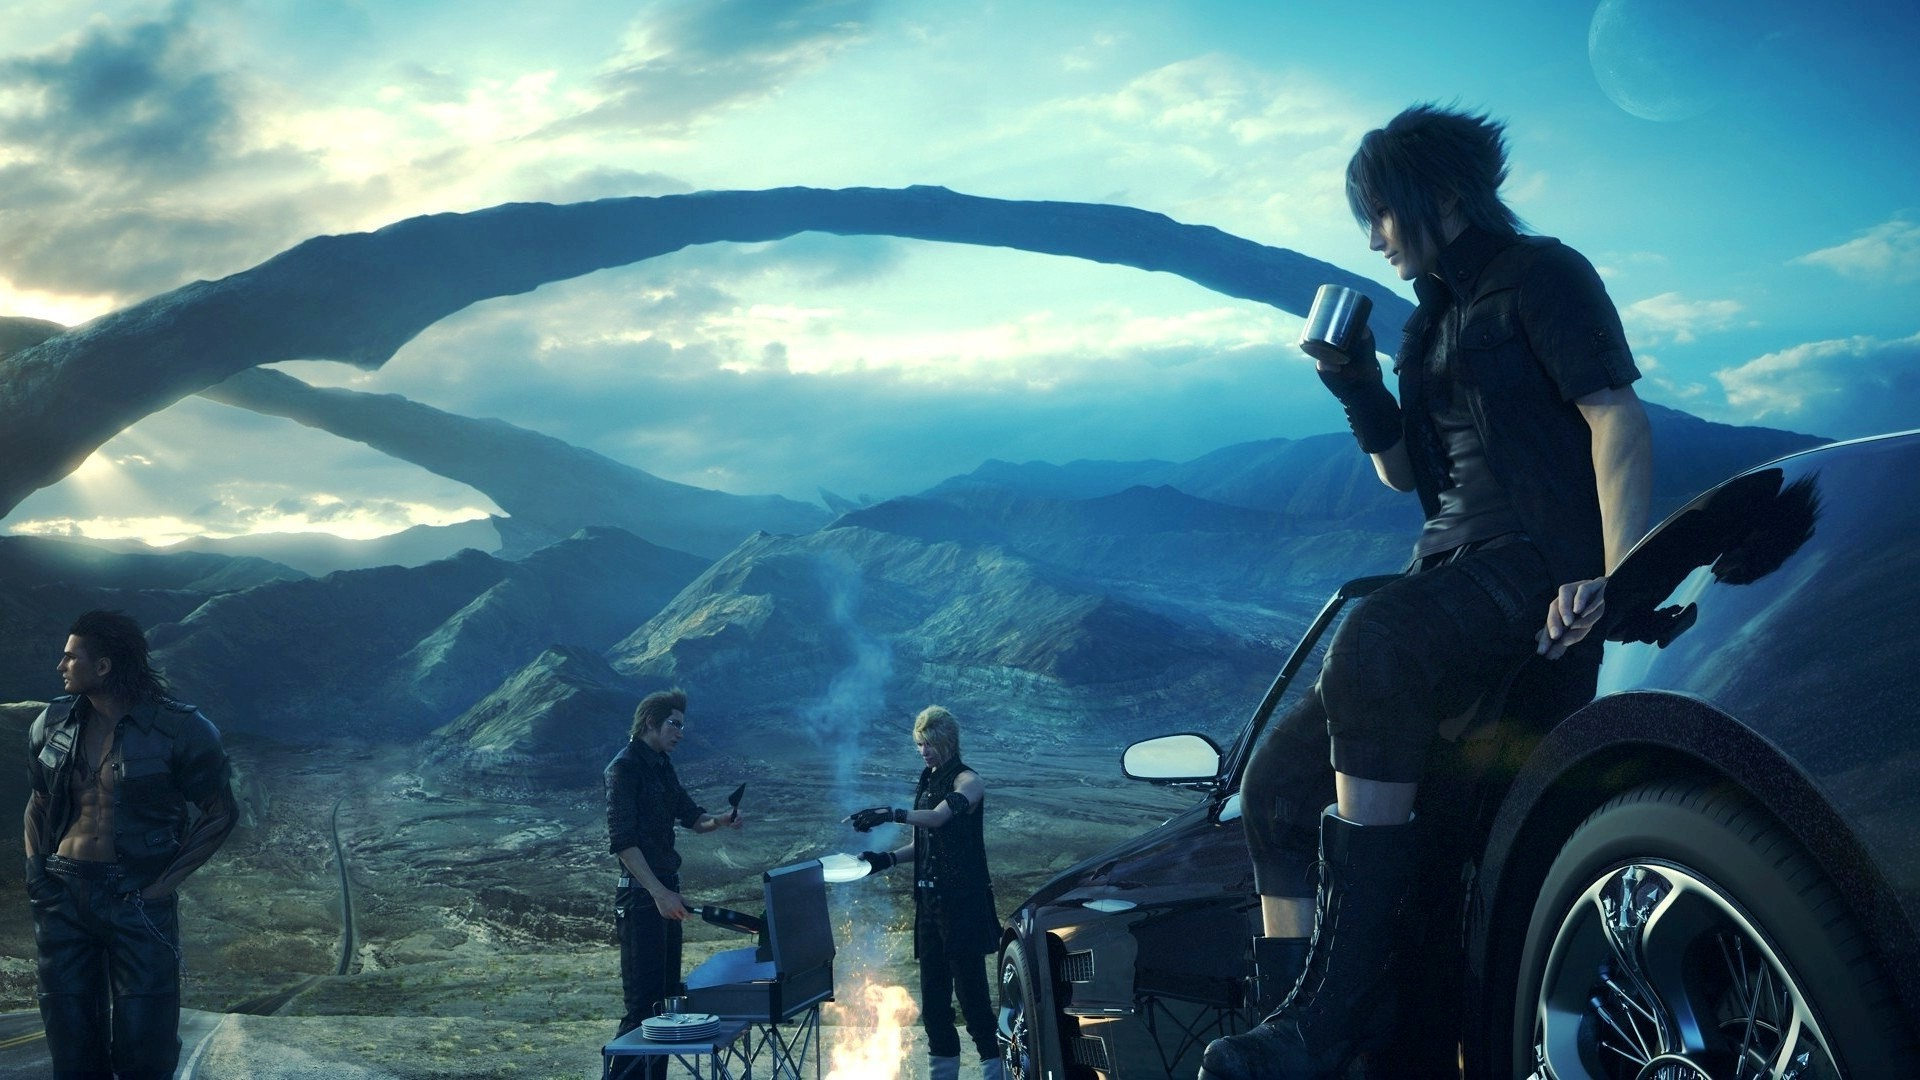 1920x1080 Final Fantasy XV is getting the biggest push Square Enix has ever given a  game - Geek.com